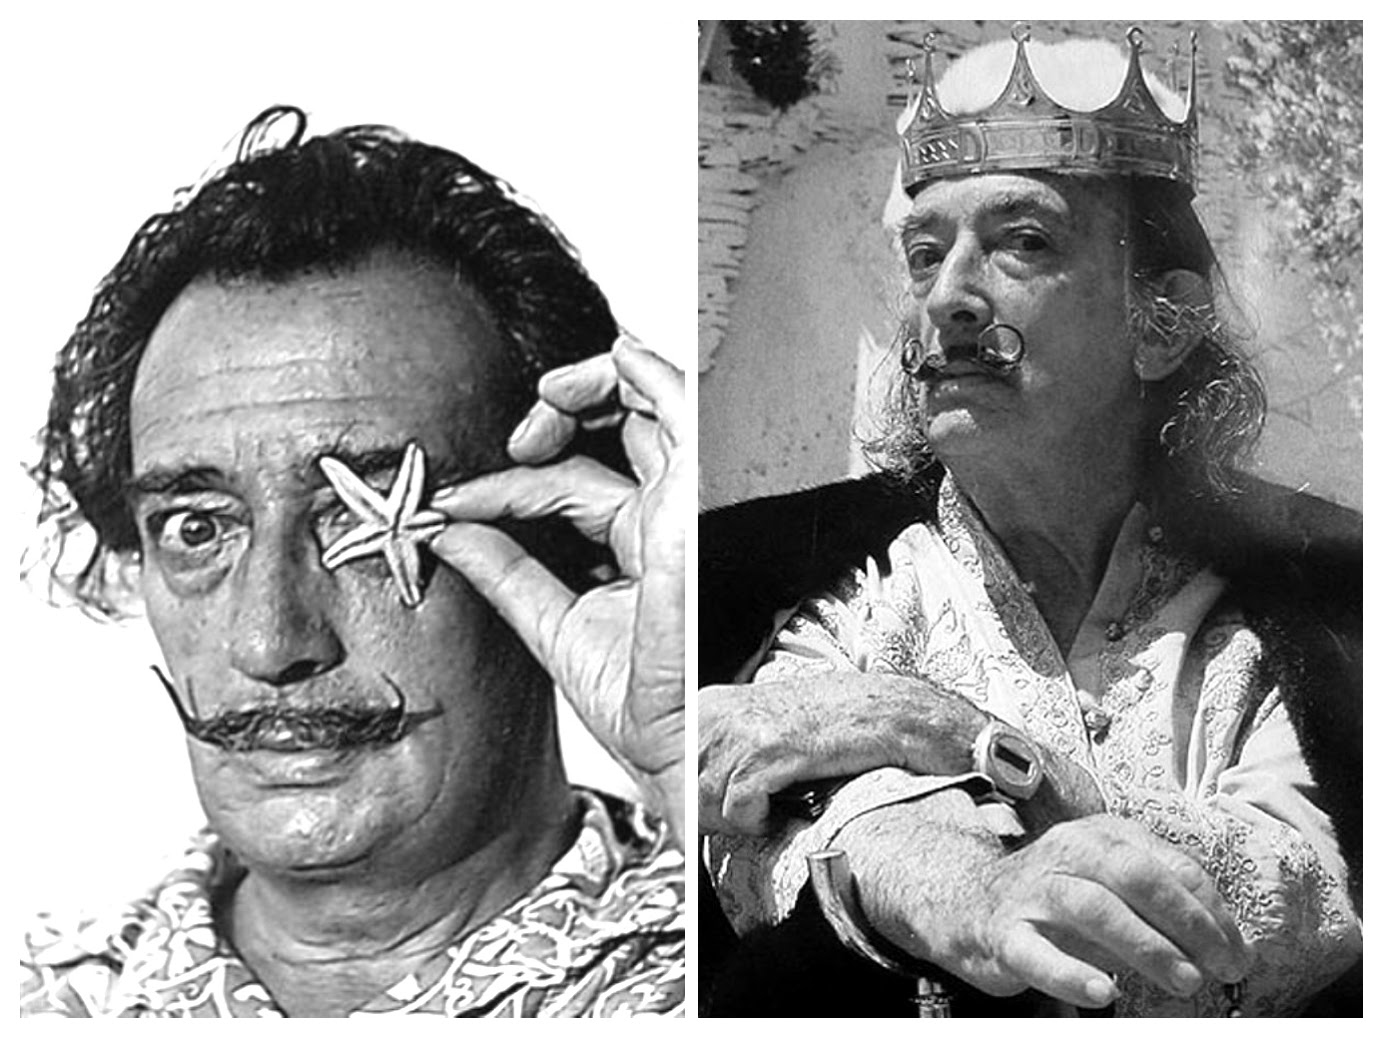 Salvador DALI (1904 – 1989) -Surrealistic king – Photo collage